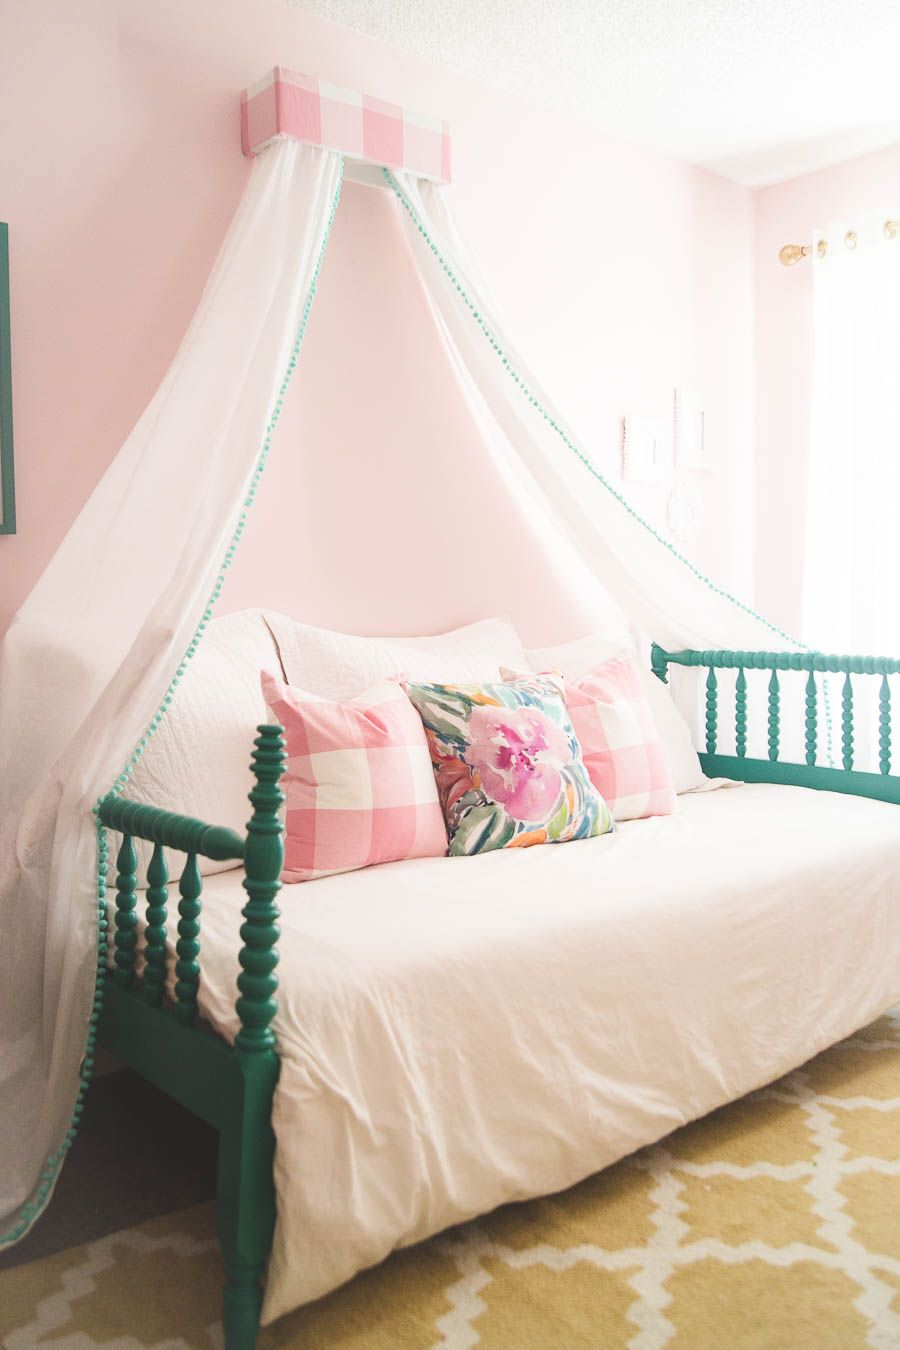 Sweetest Little Girls Bedroom Makeover With Better Homes And Gardens Goods From Walmart Beauty